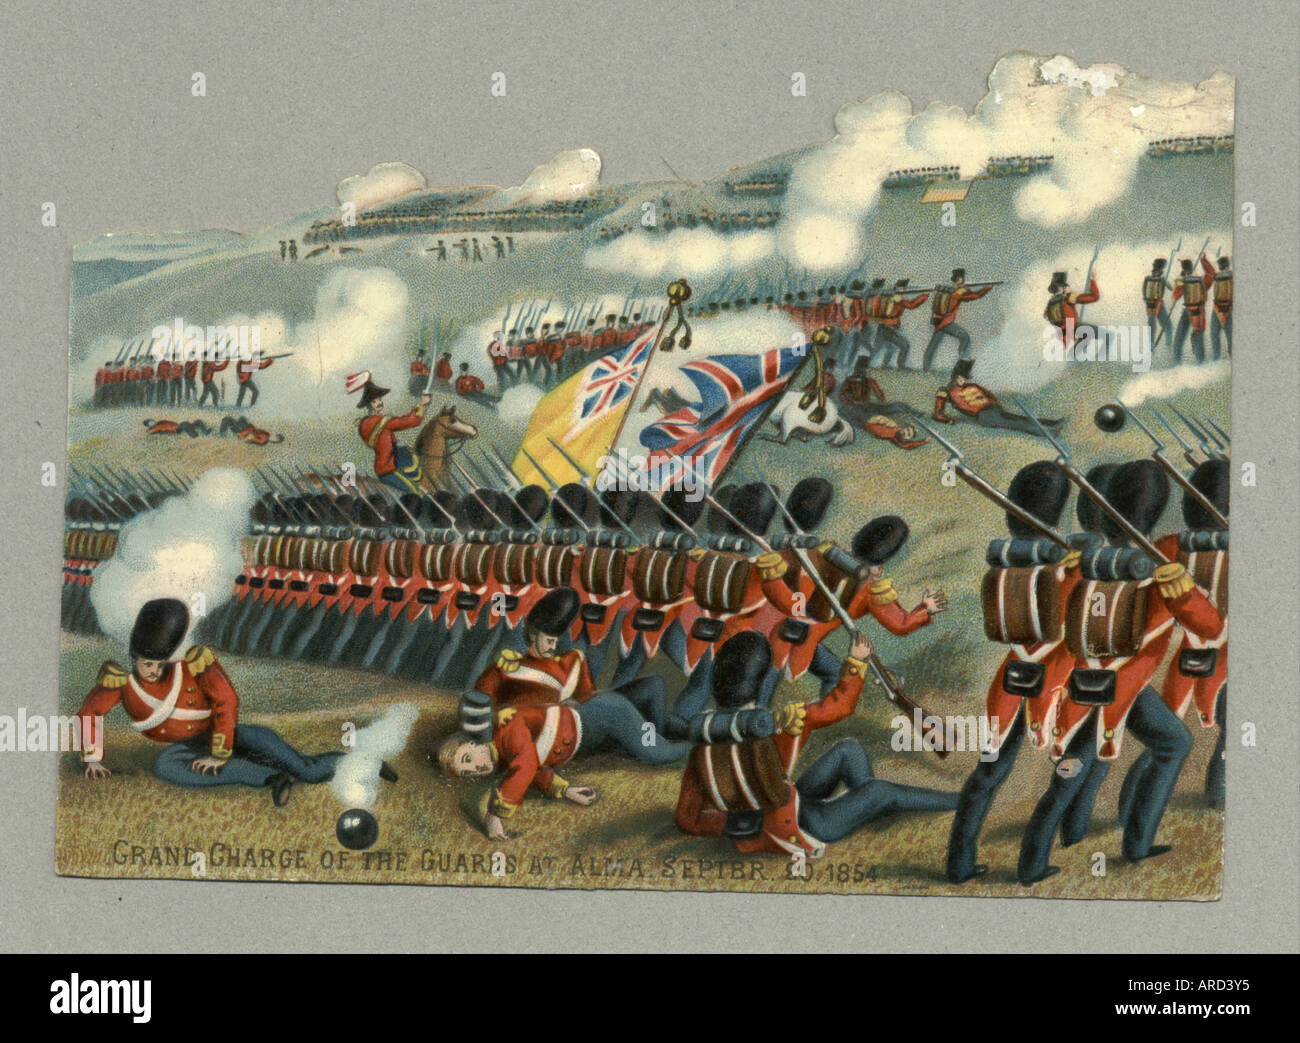 Chromolithographed diecut and embossed scrap of the Grand Charge of the Guards at Alma 1854, circa 1880 - Stock Image